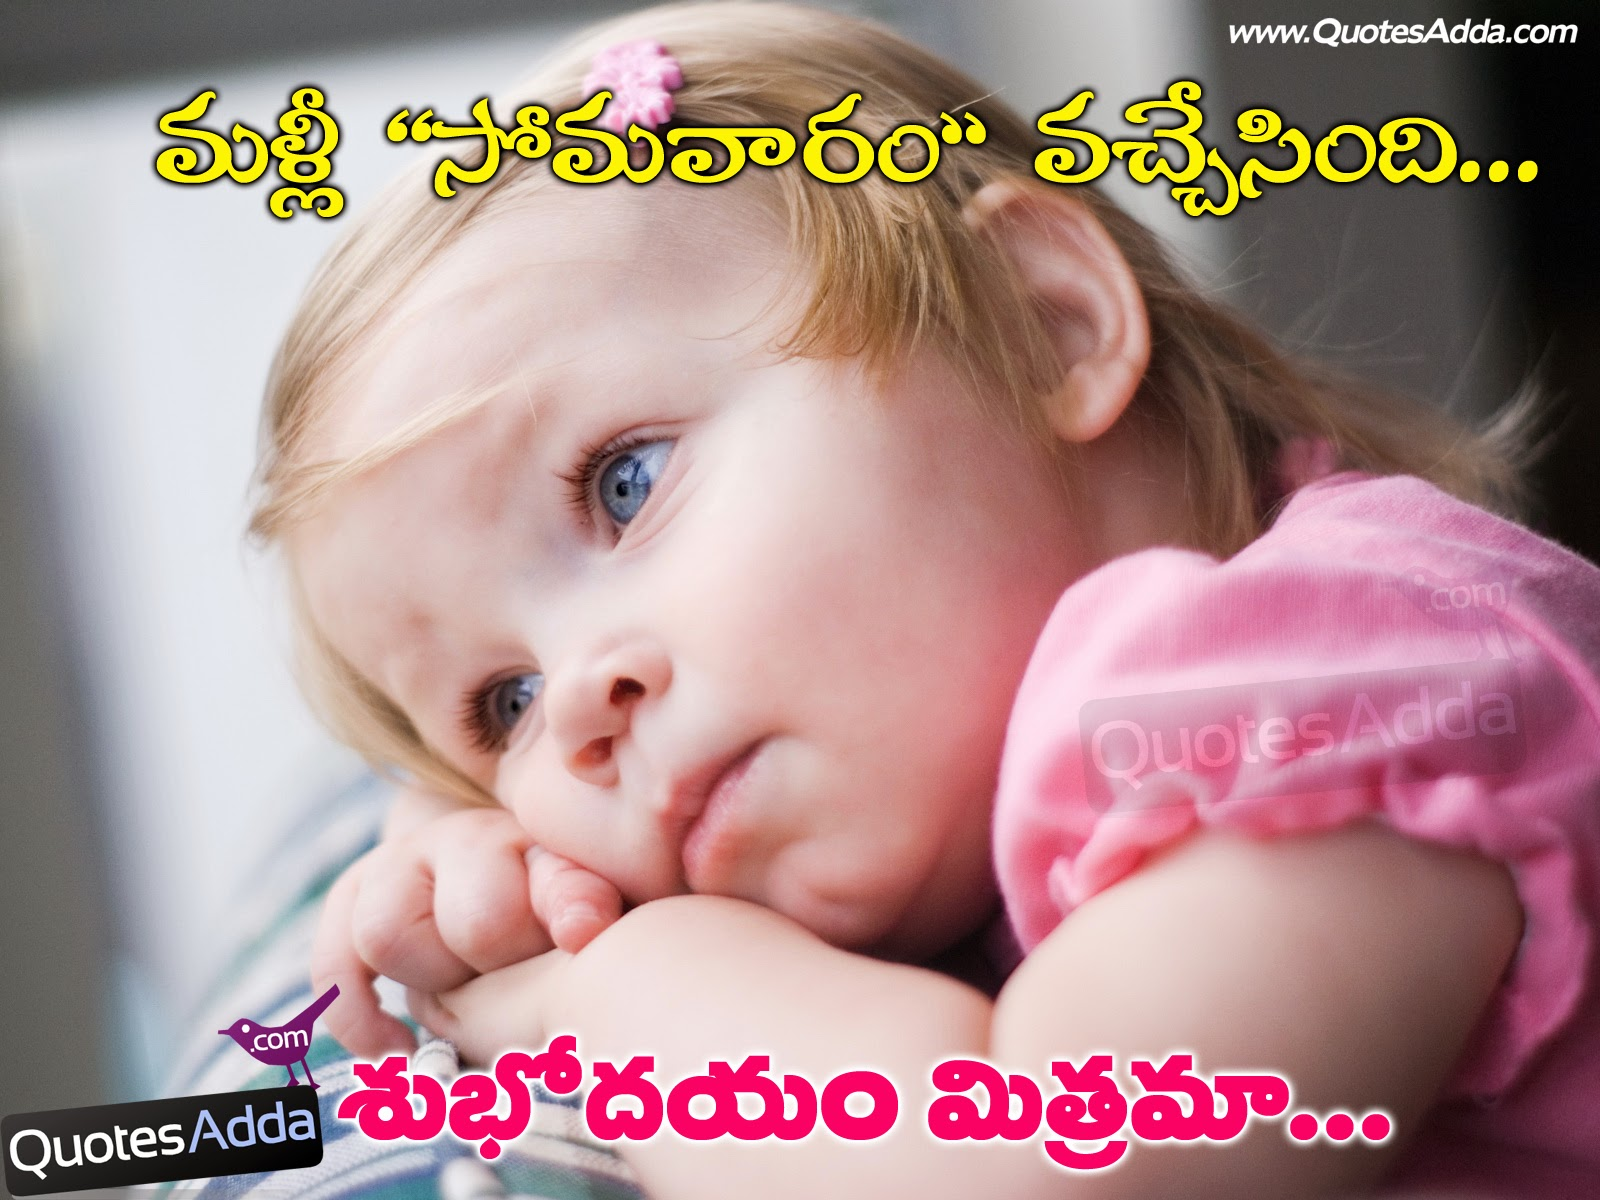 Google Good Morning In French : Facebook telugu funny pictures quotes